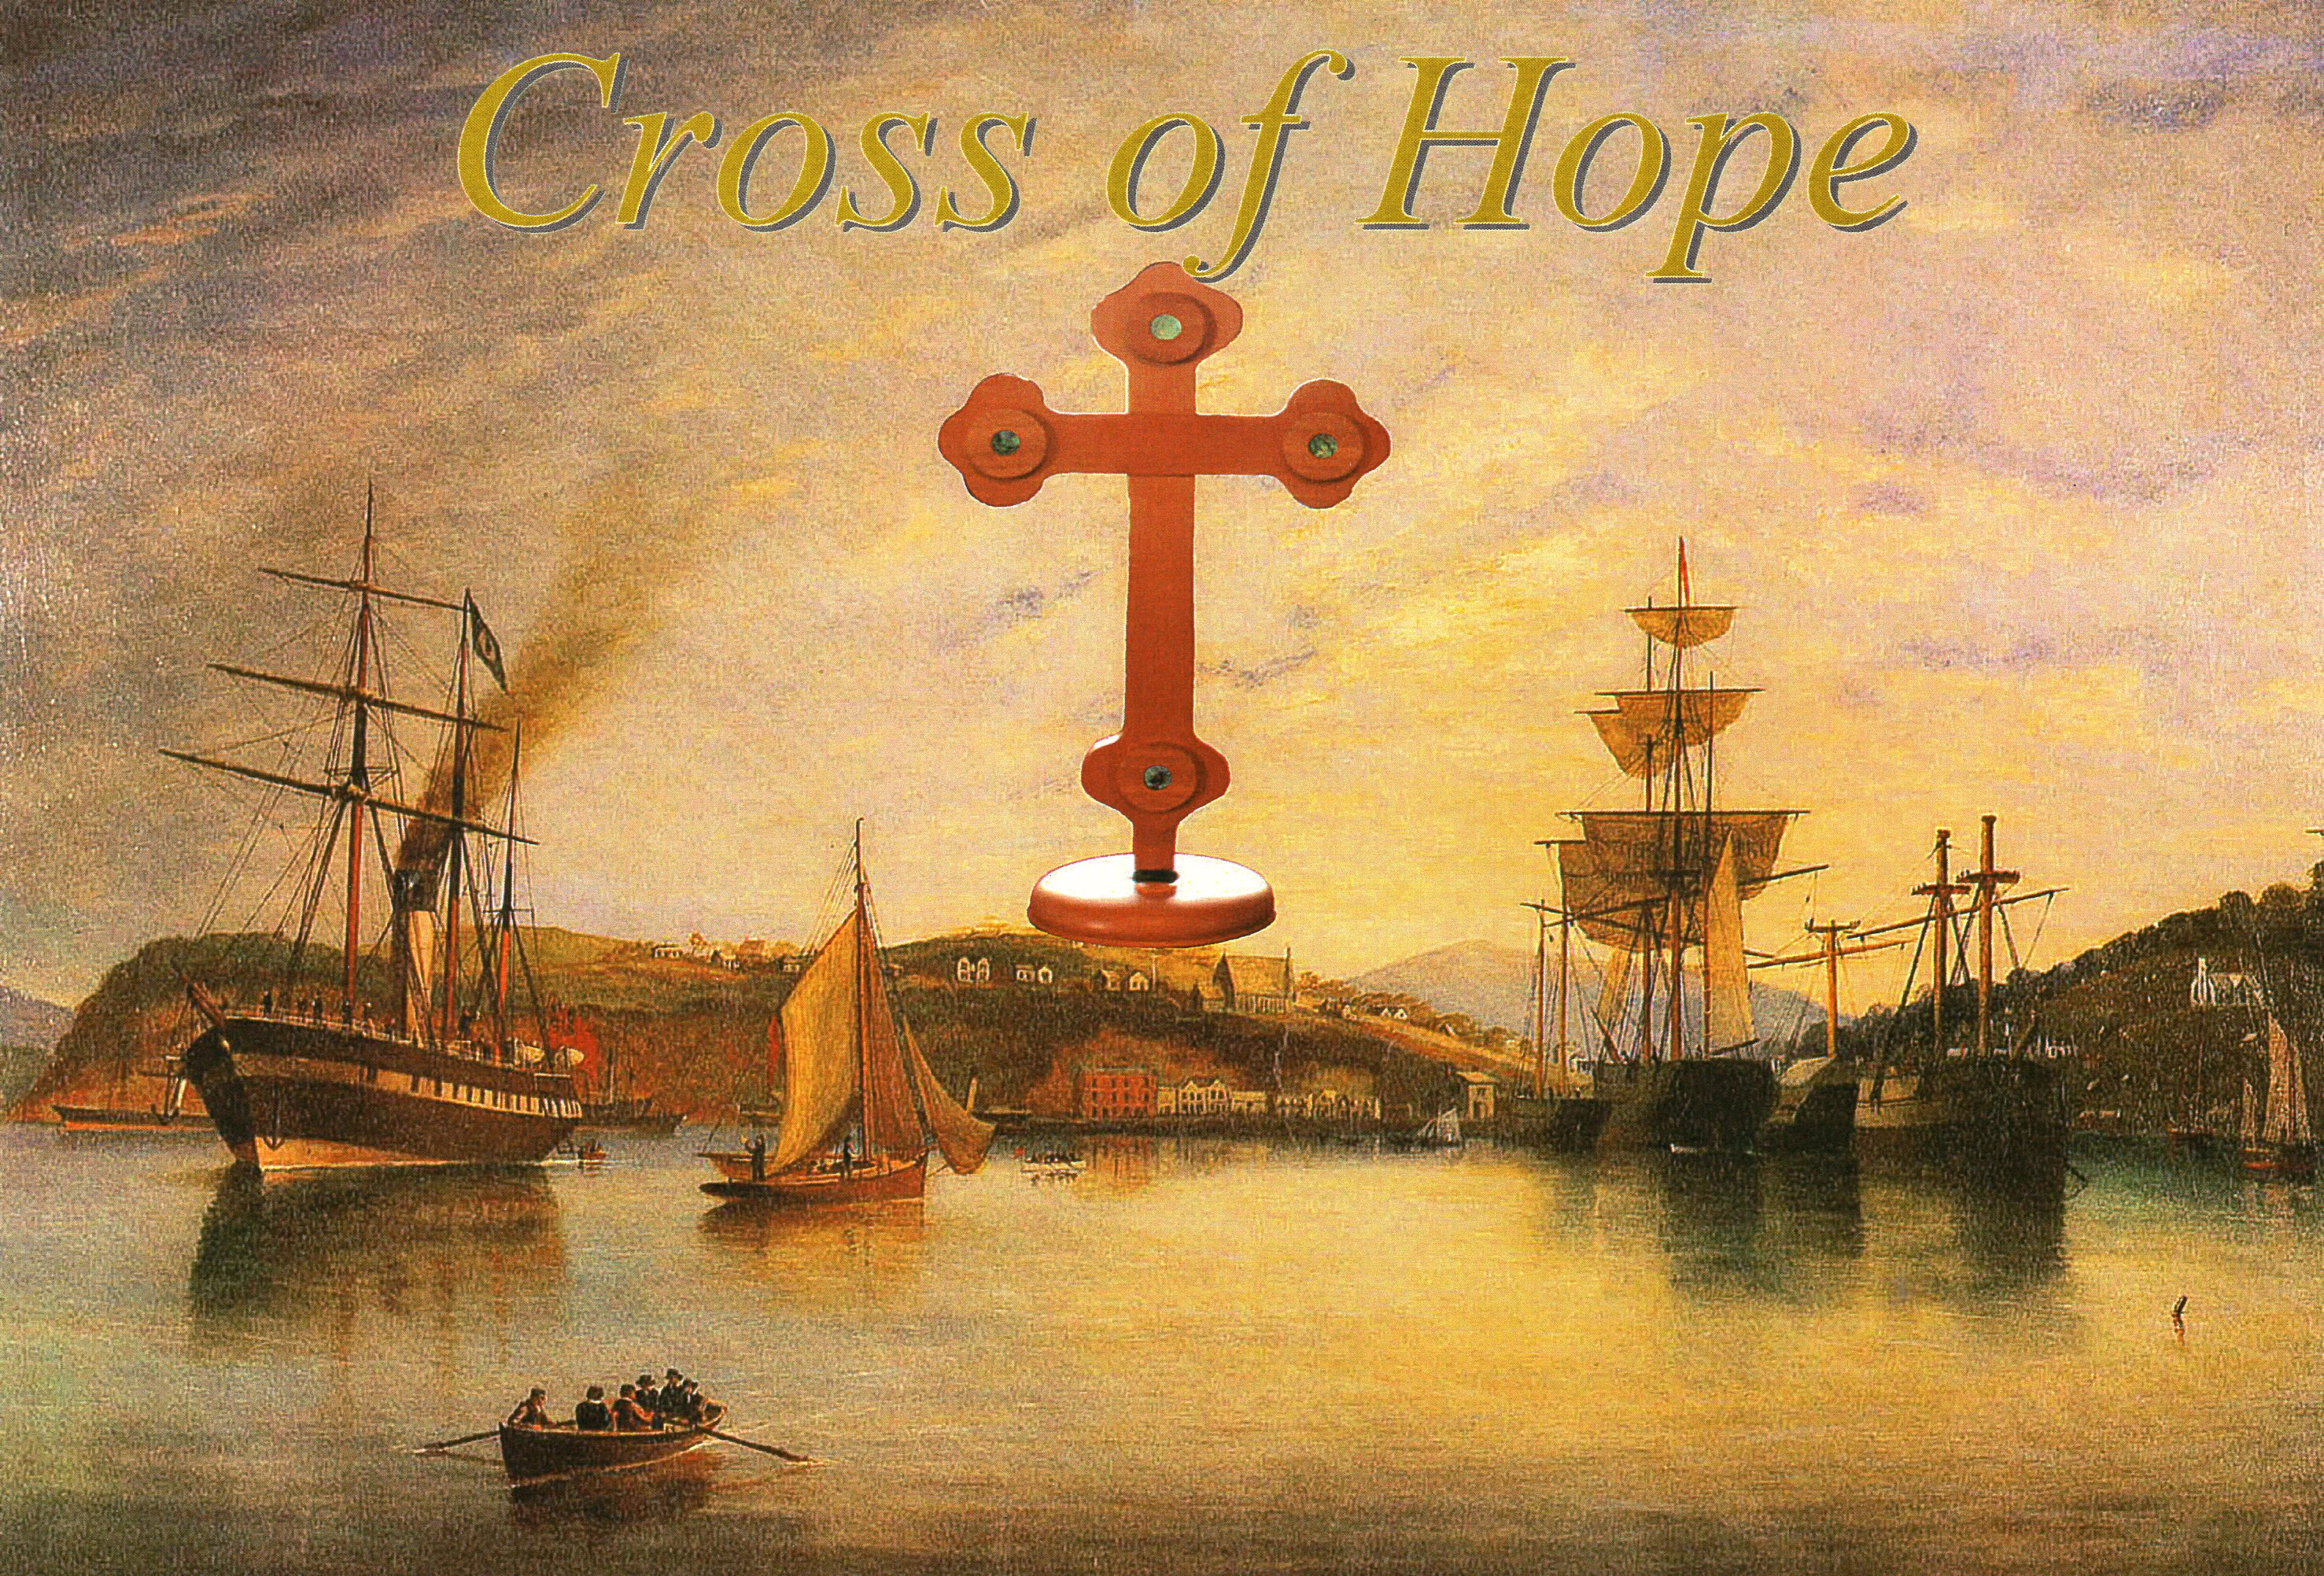 The cross  superimposed on an old photograph of Otago Harbour